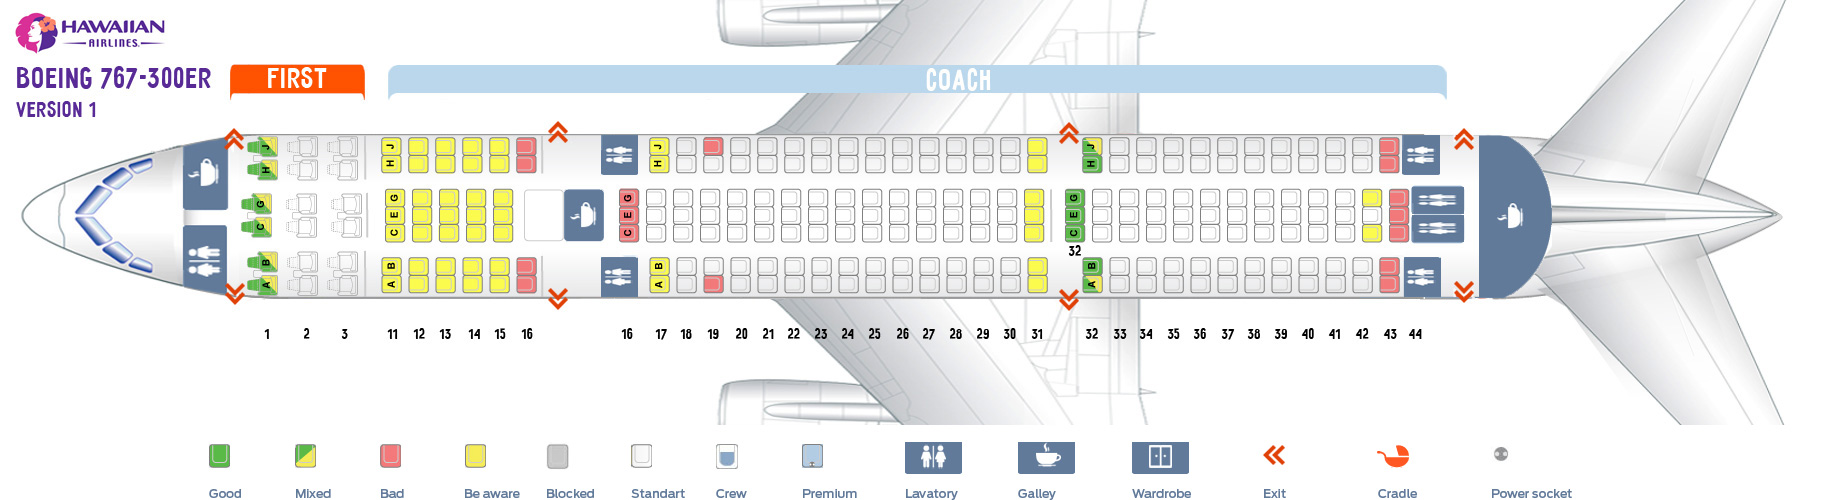 Seat map Boeing 767-300 version 1 Hawaiian airlines